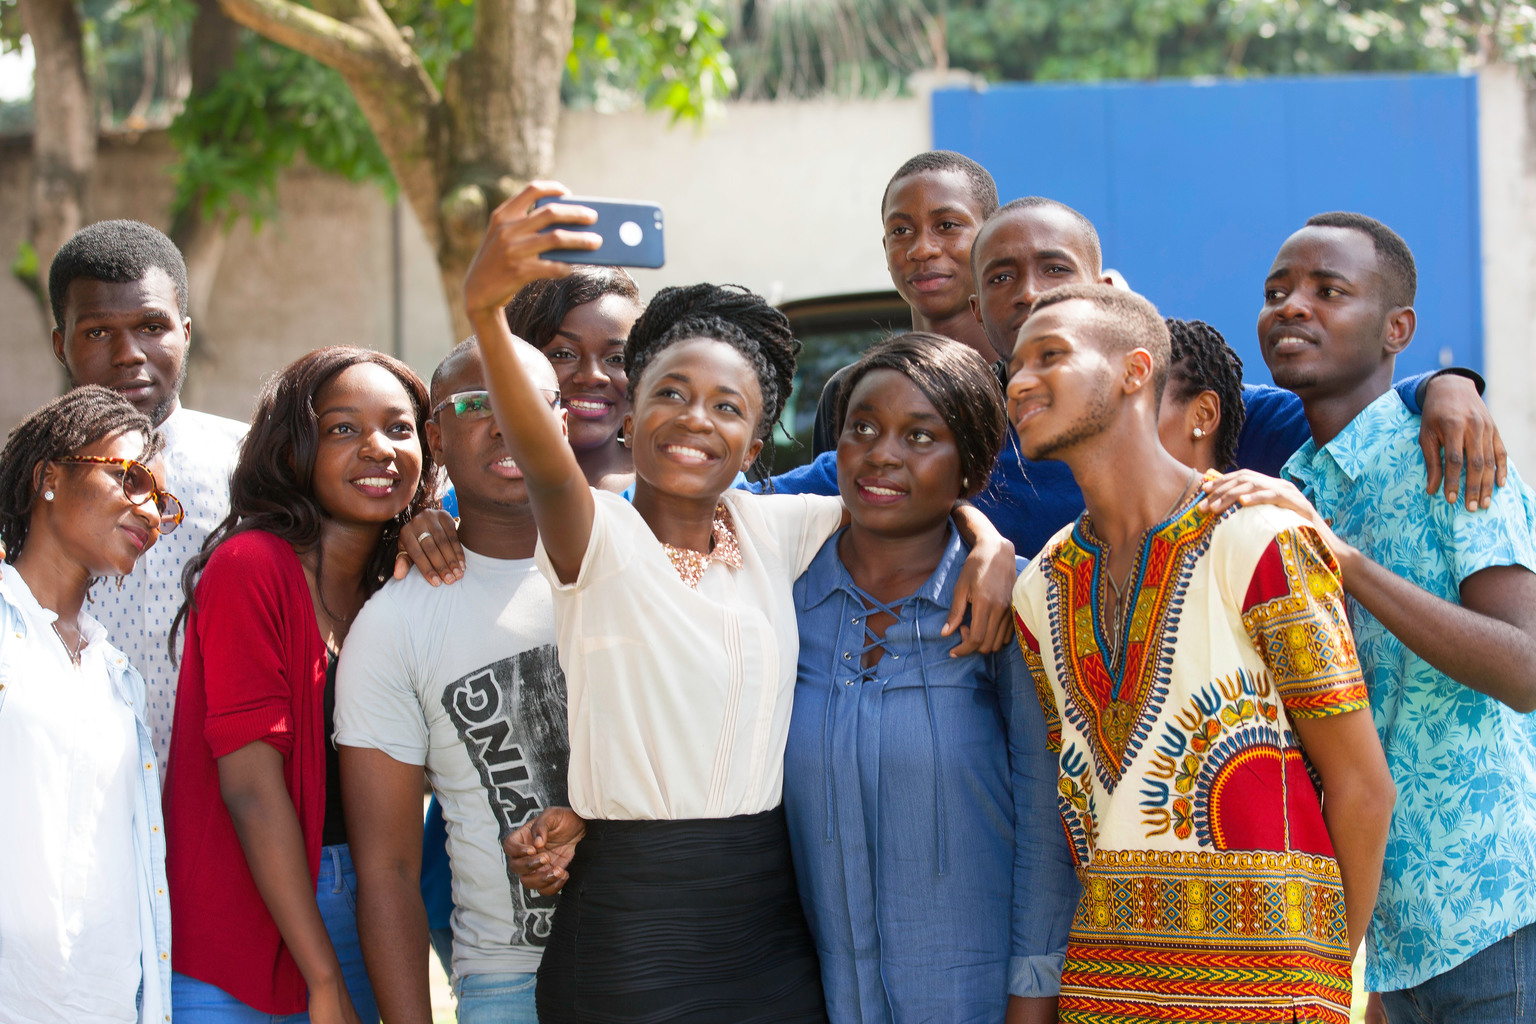 A group of young adults gather close to one another for a selfie.